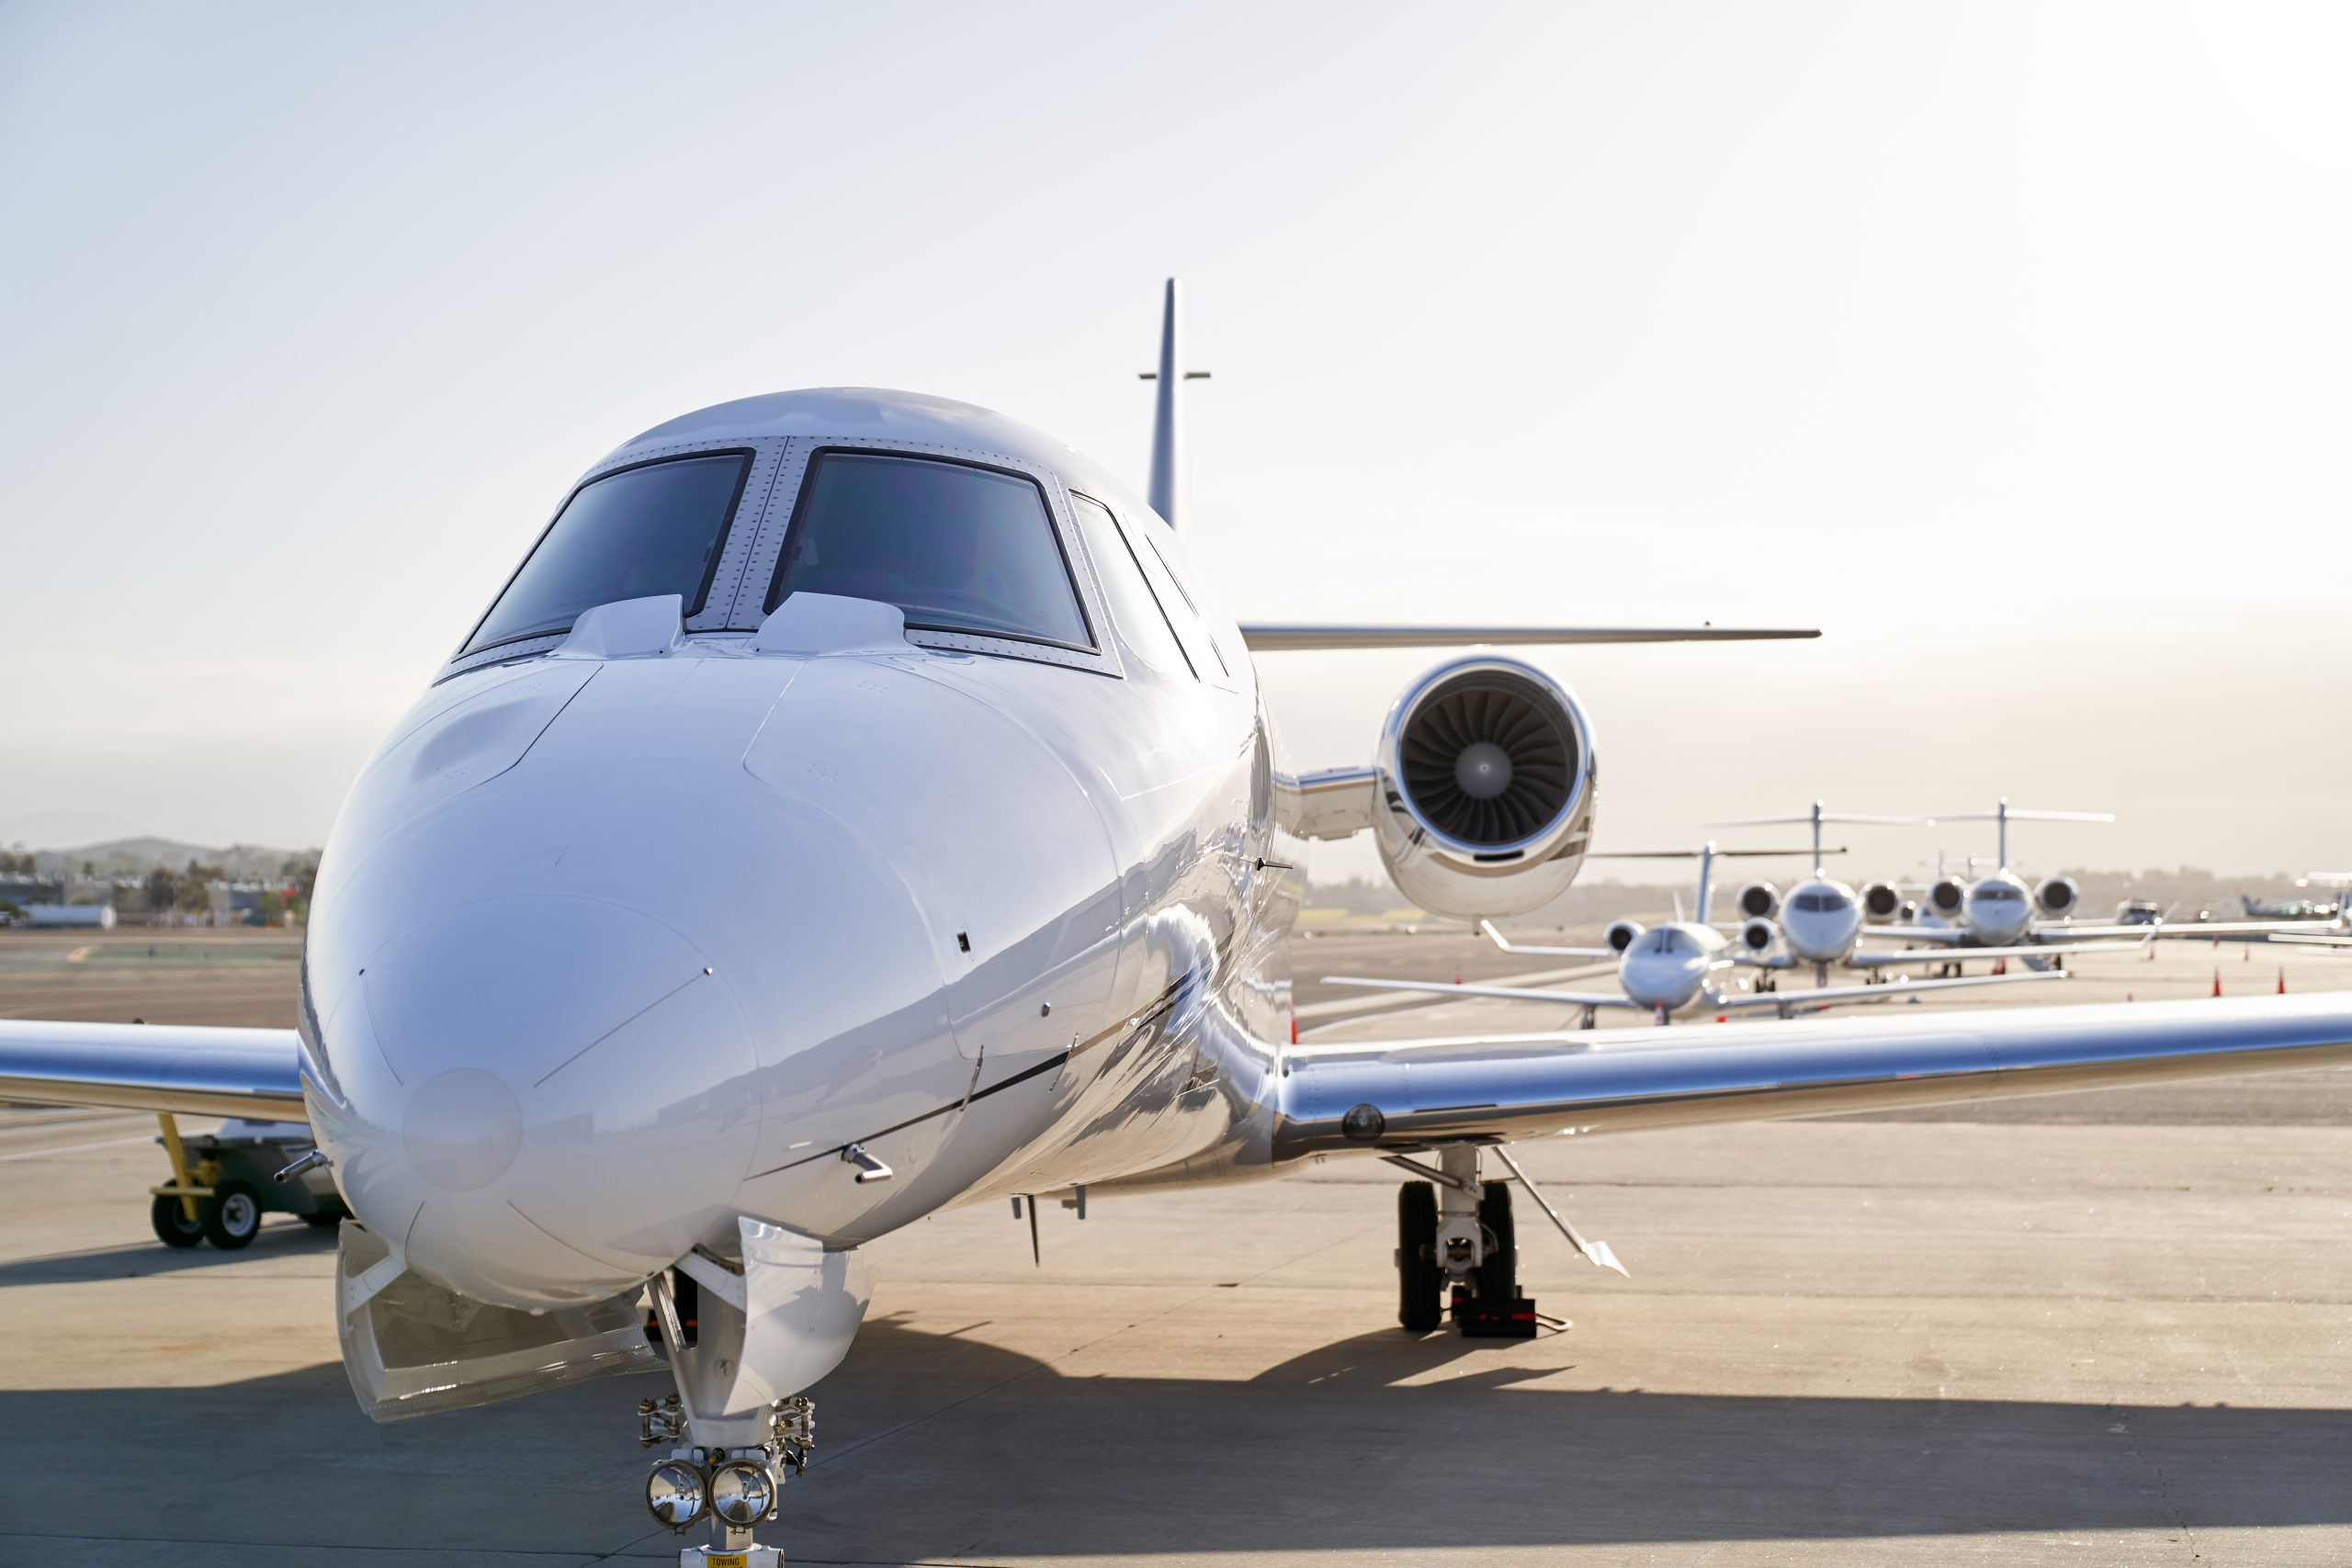 How COVID-19 Affects Private Travel